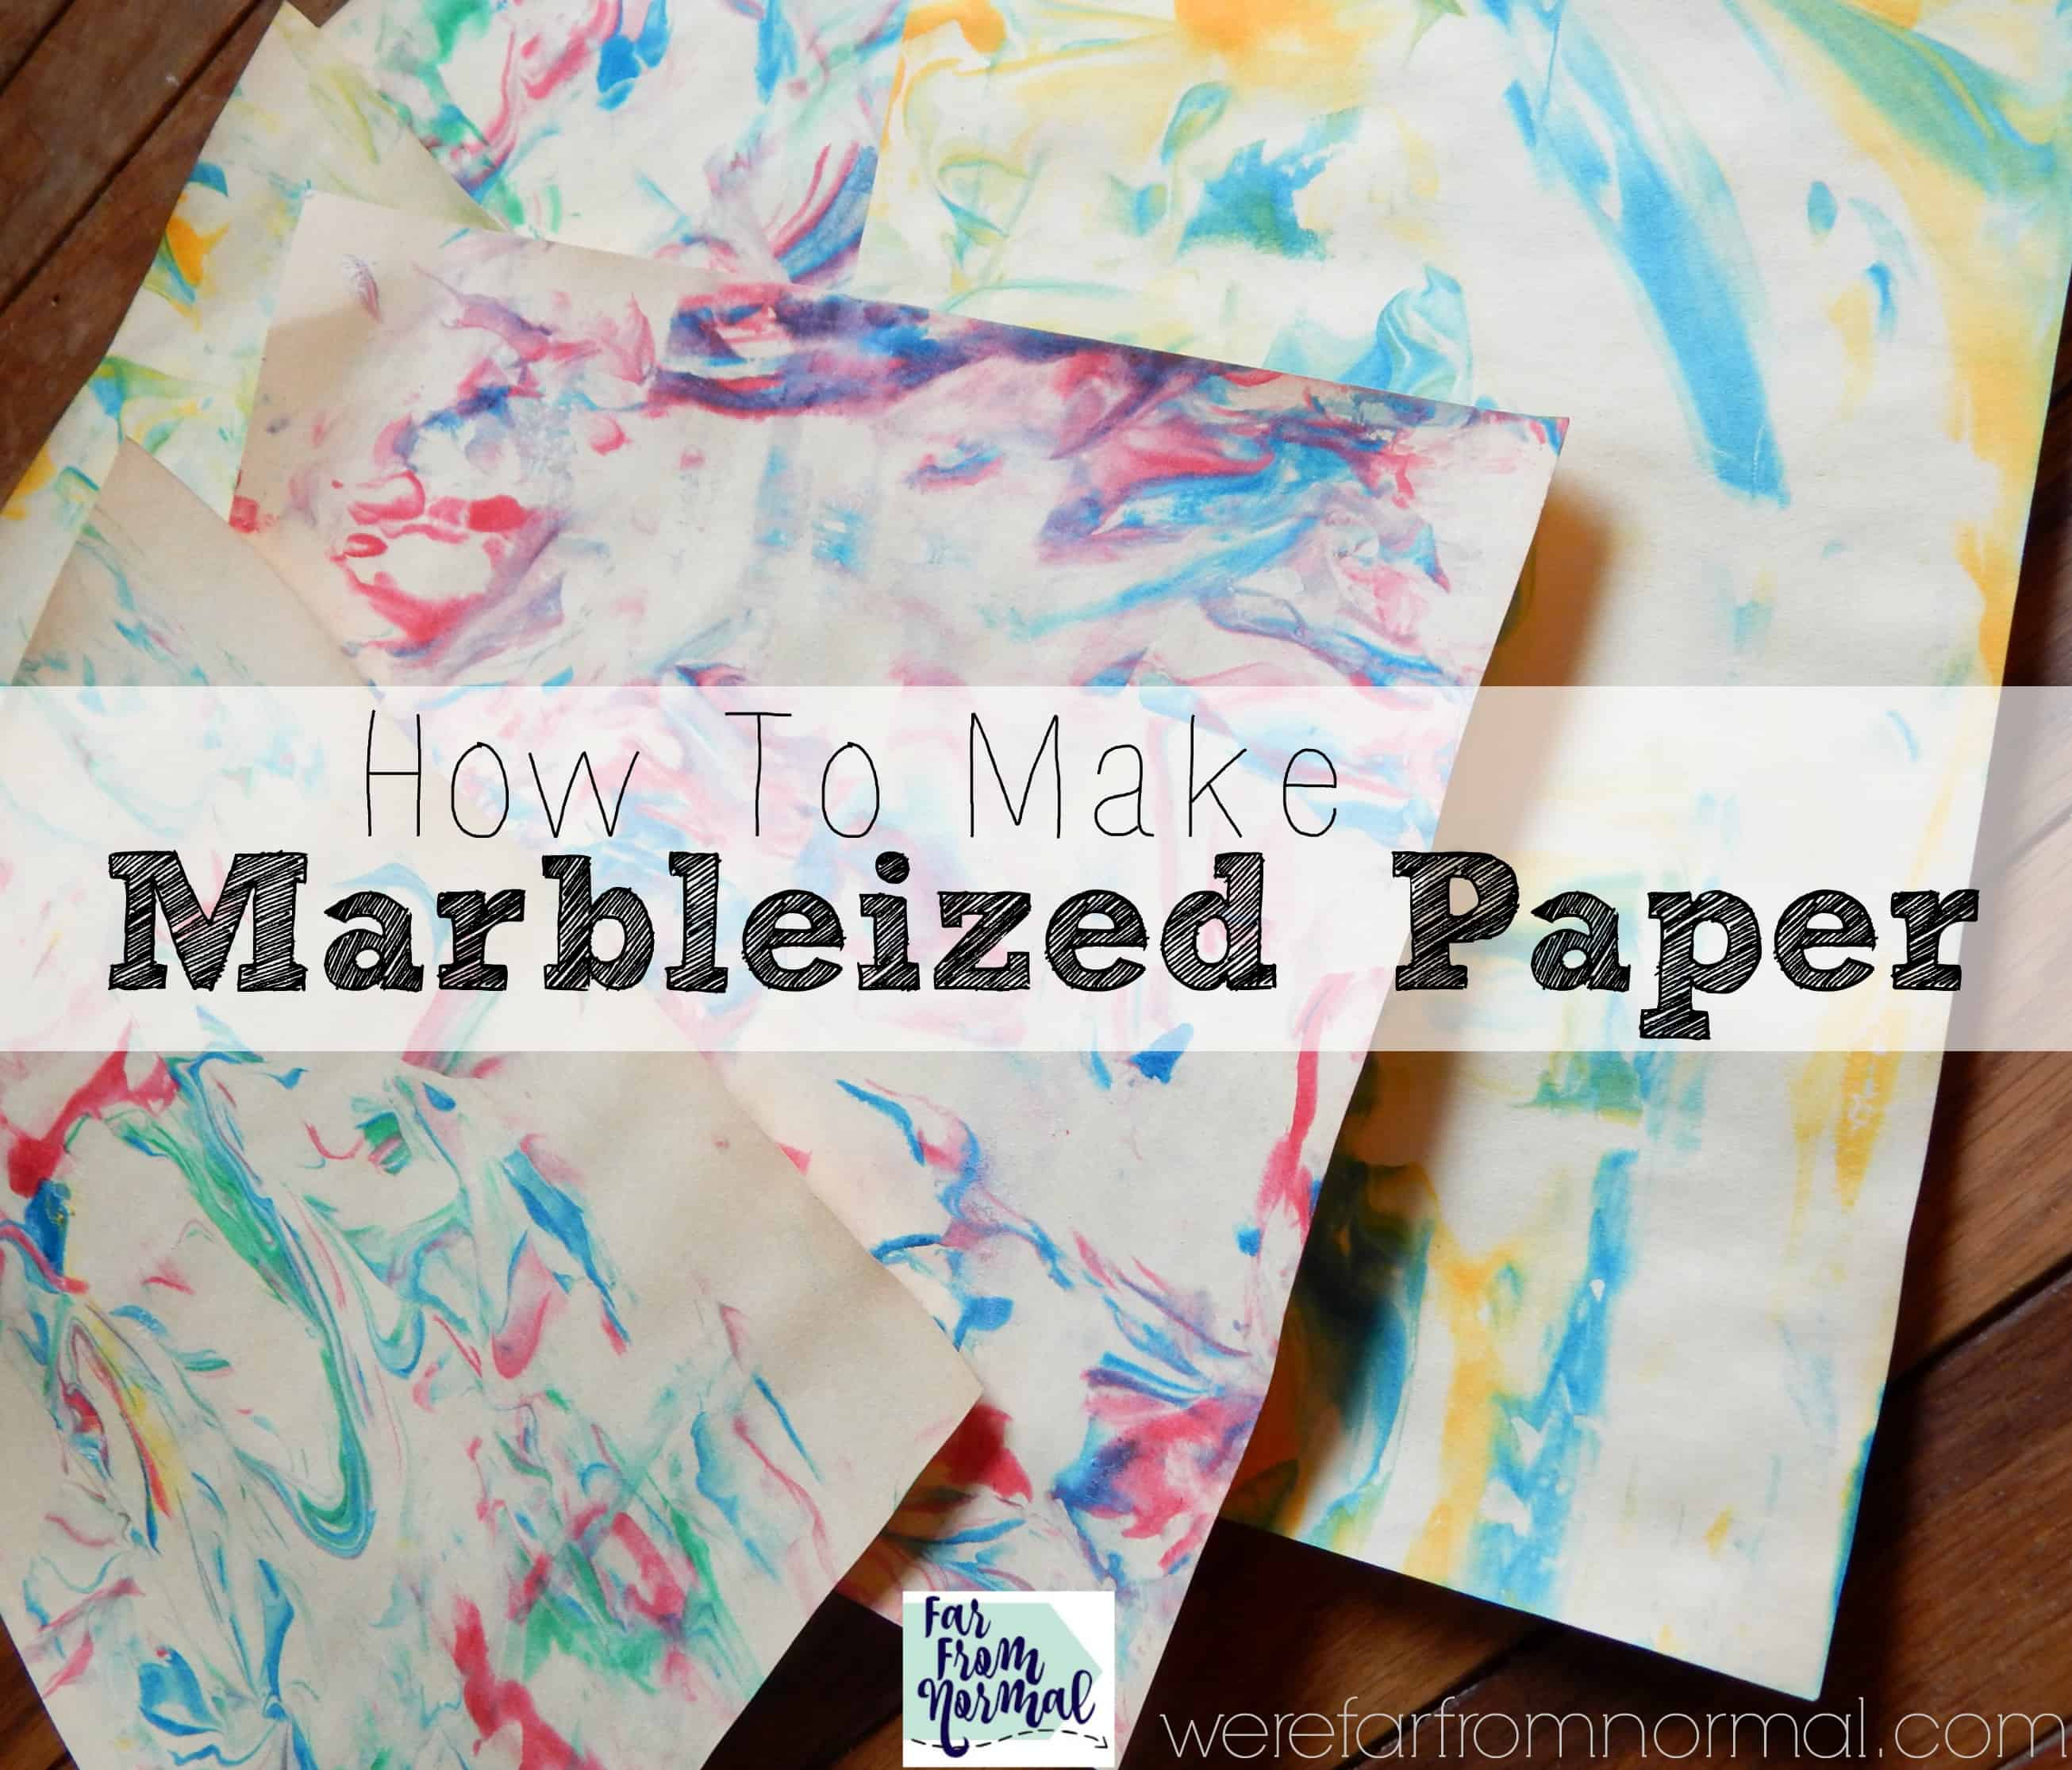 How to Make Marbleized Paper